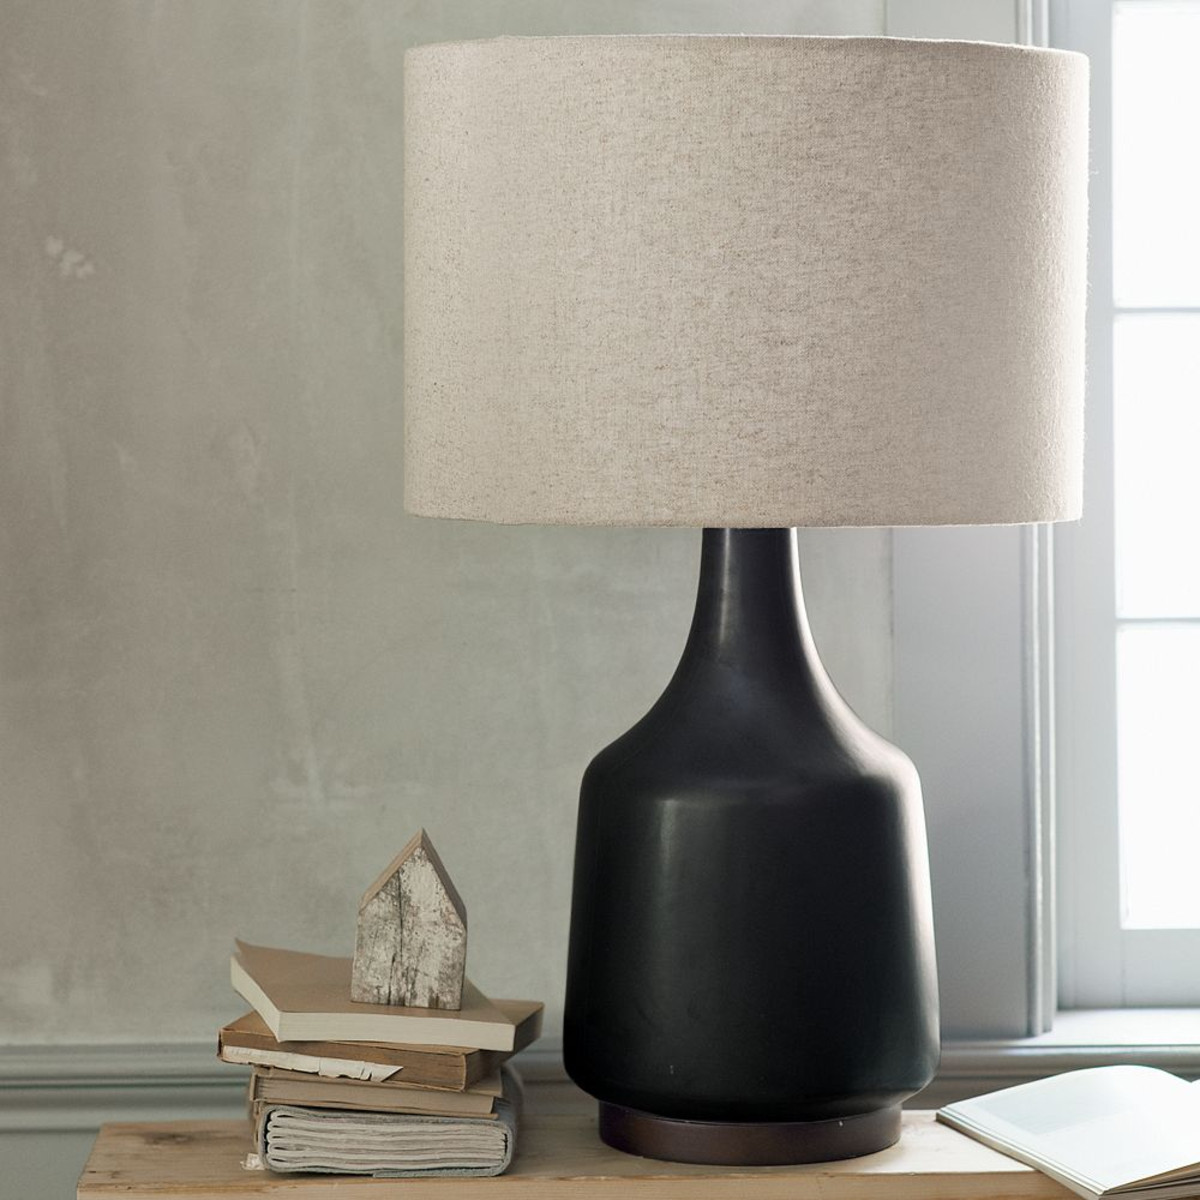 Top 50 modern table lamps for living room ideas home - Black table lamps for living room ...